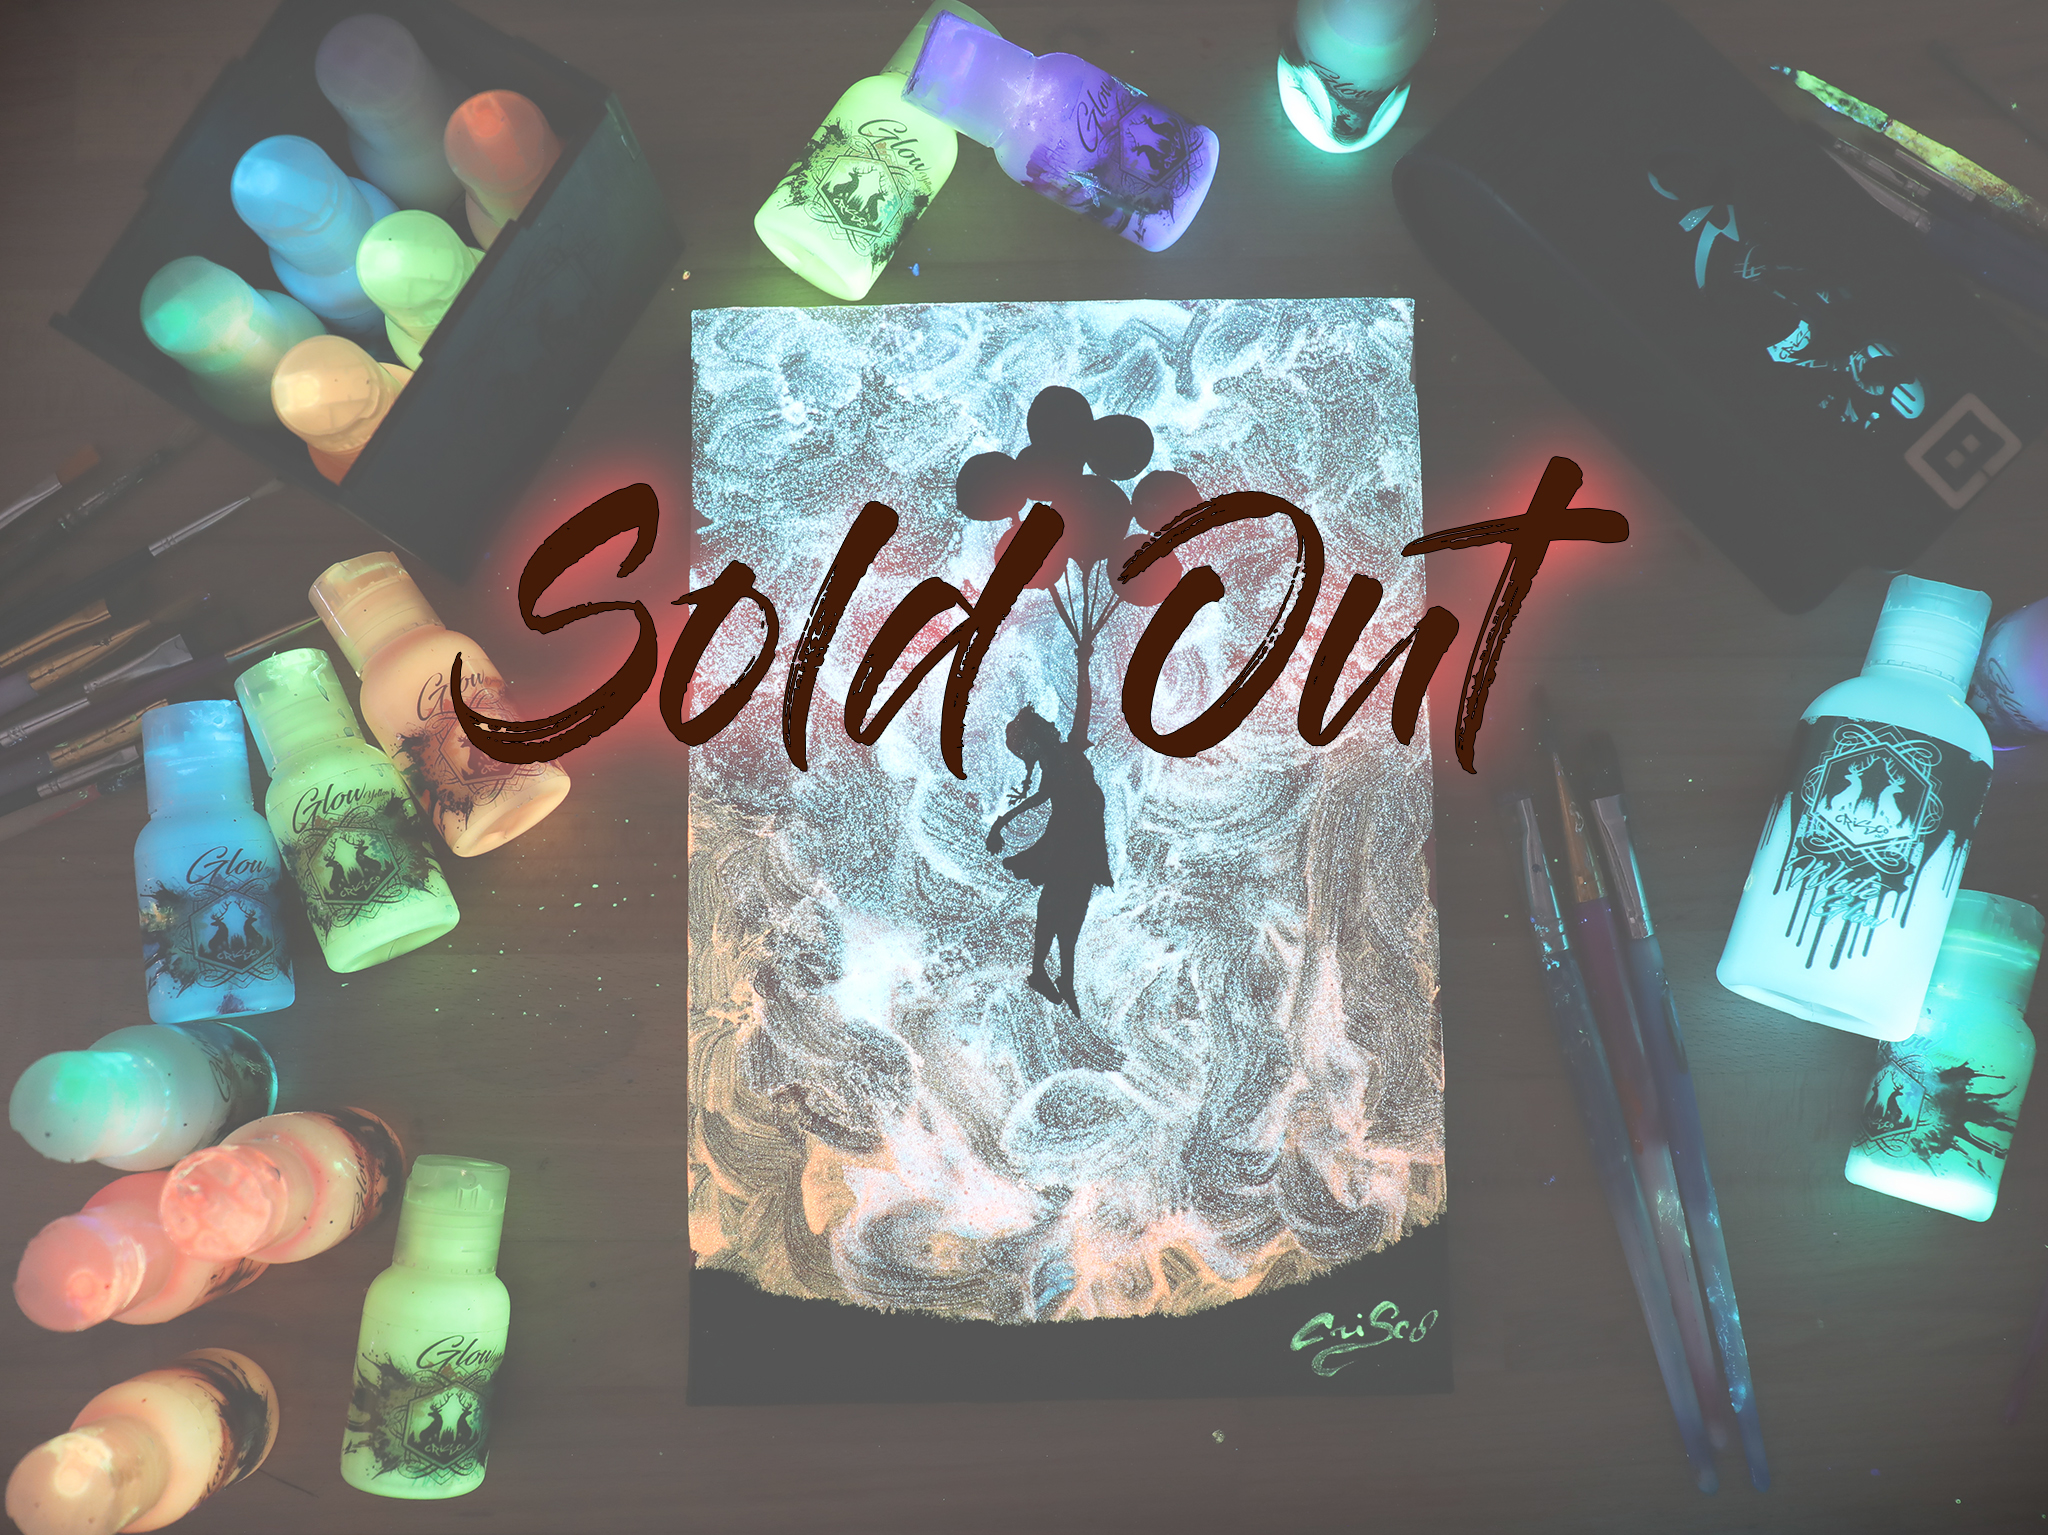 sold out fileli